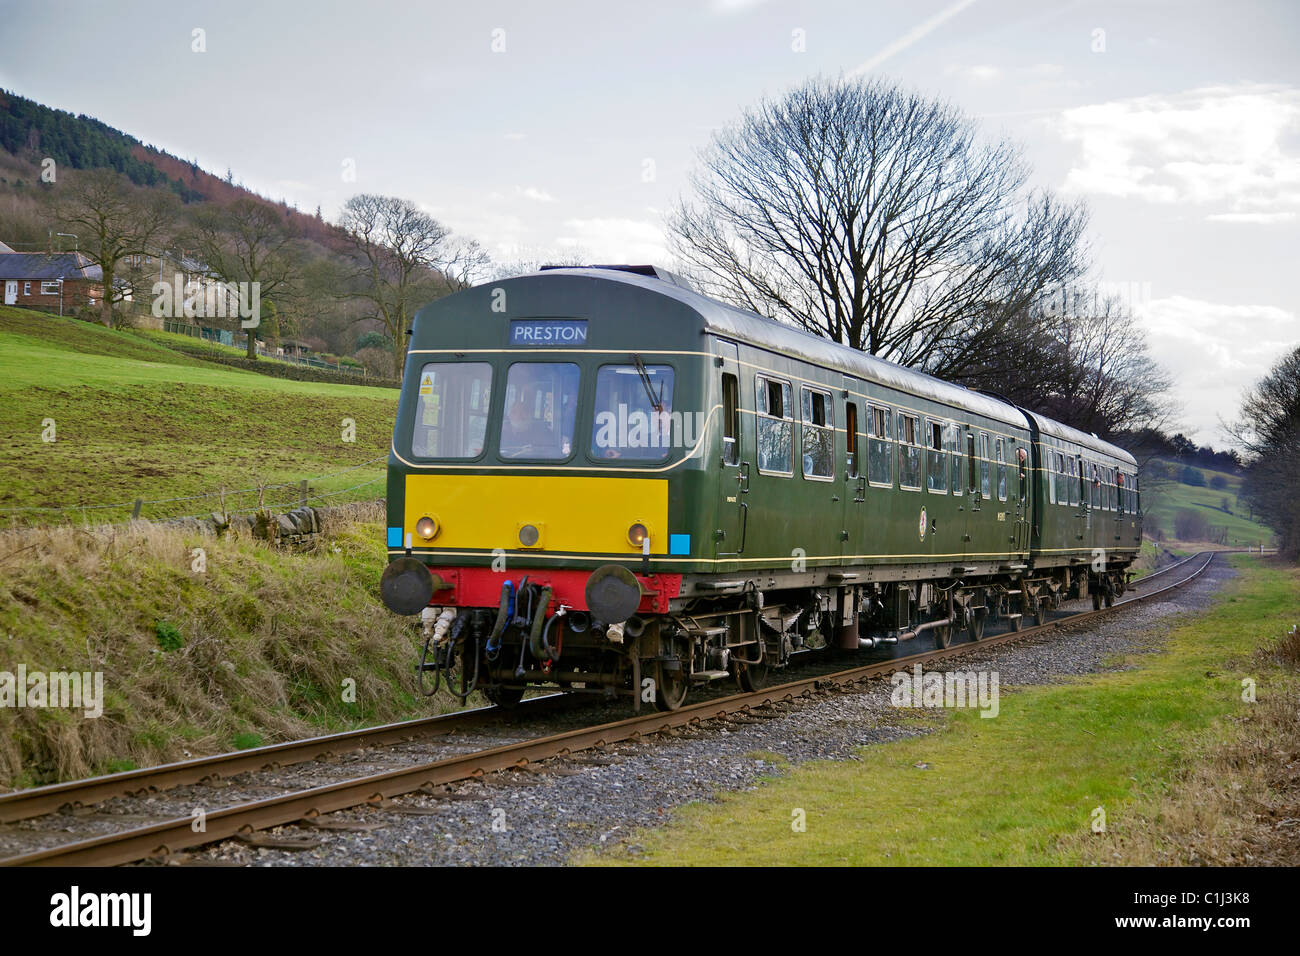 Diesel multiple unit train DMU on the East Lancashire Railway. - Stock Image